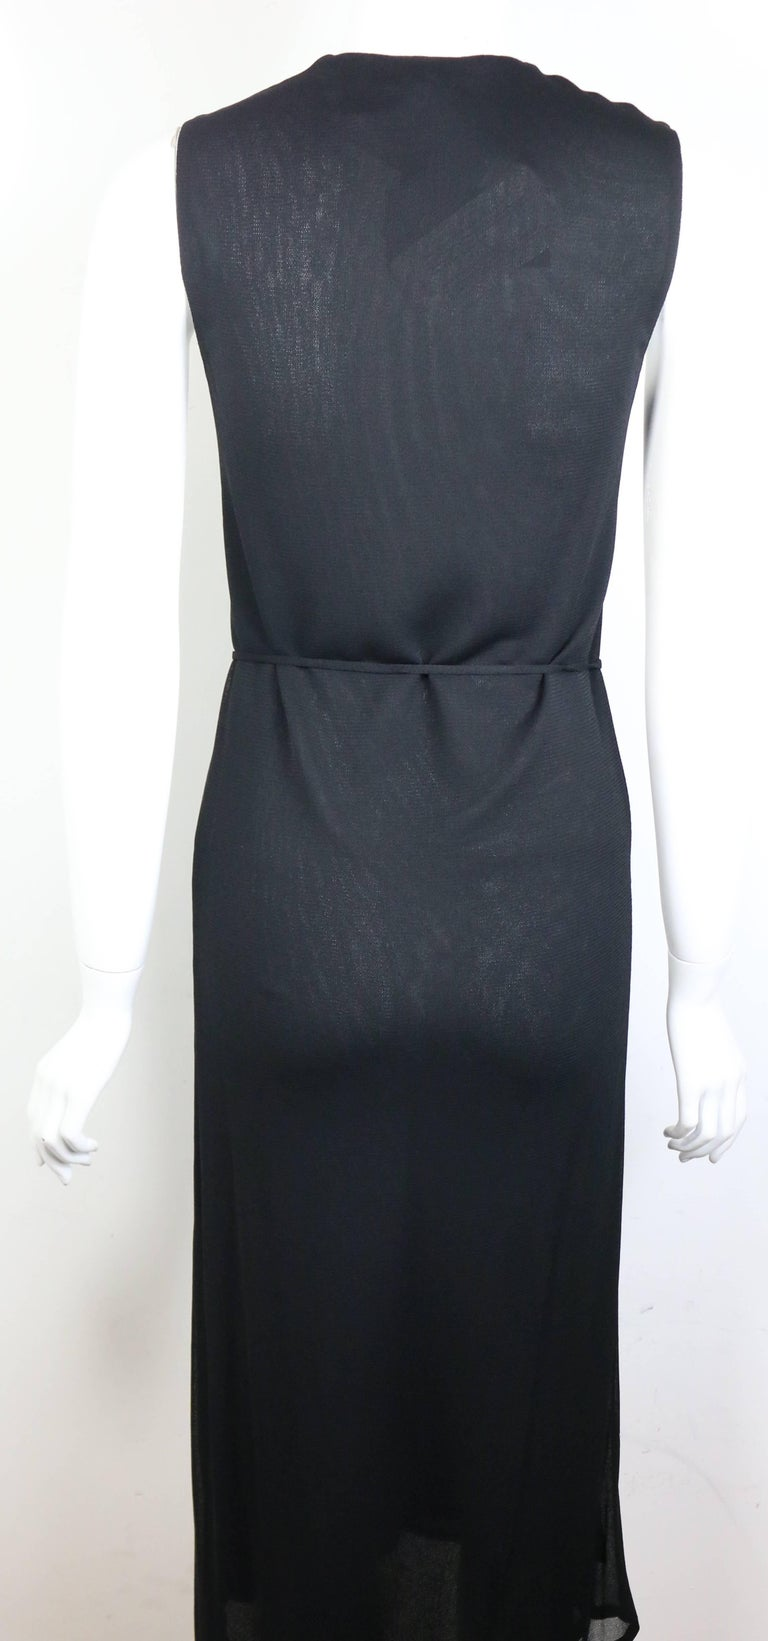 Gucci by Tom Ford Black V-neckline Dress  In New Condition For Sale In Sheung Wan, HK